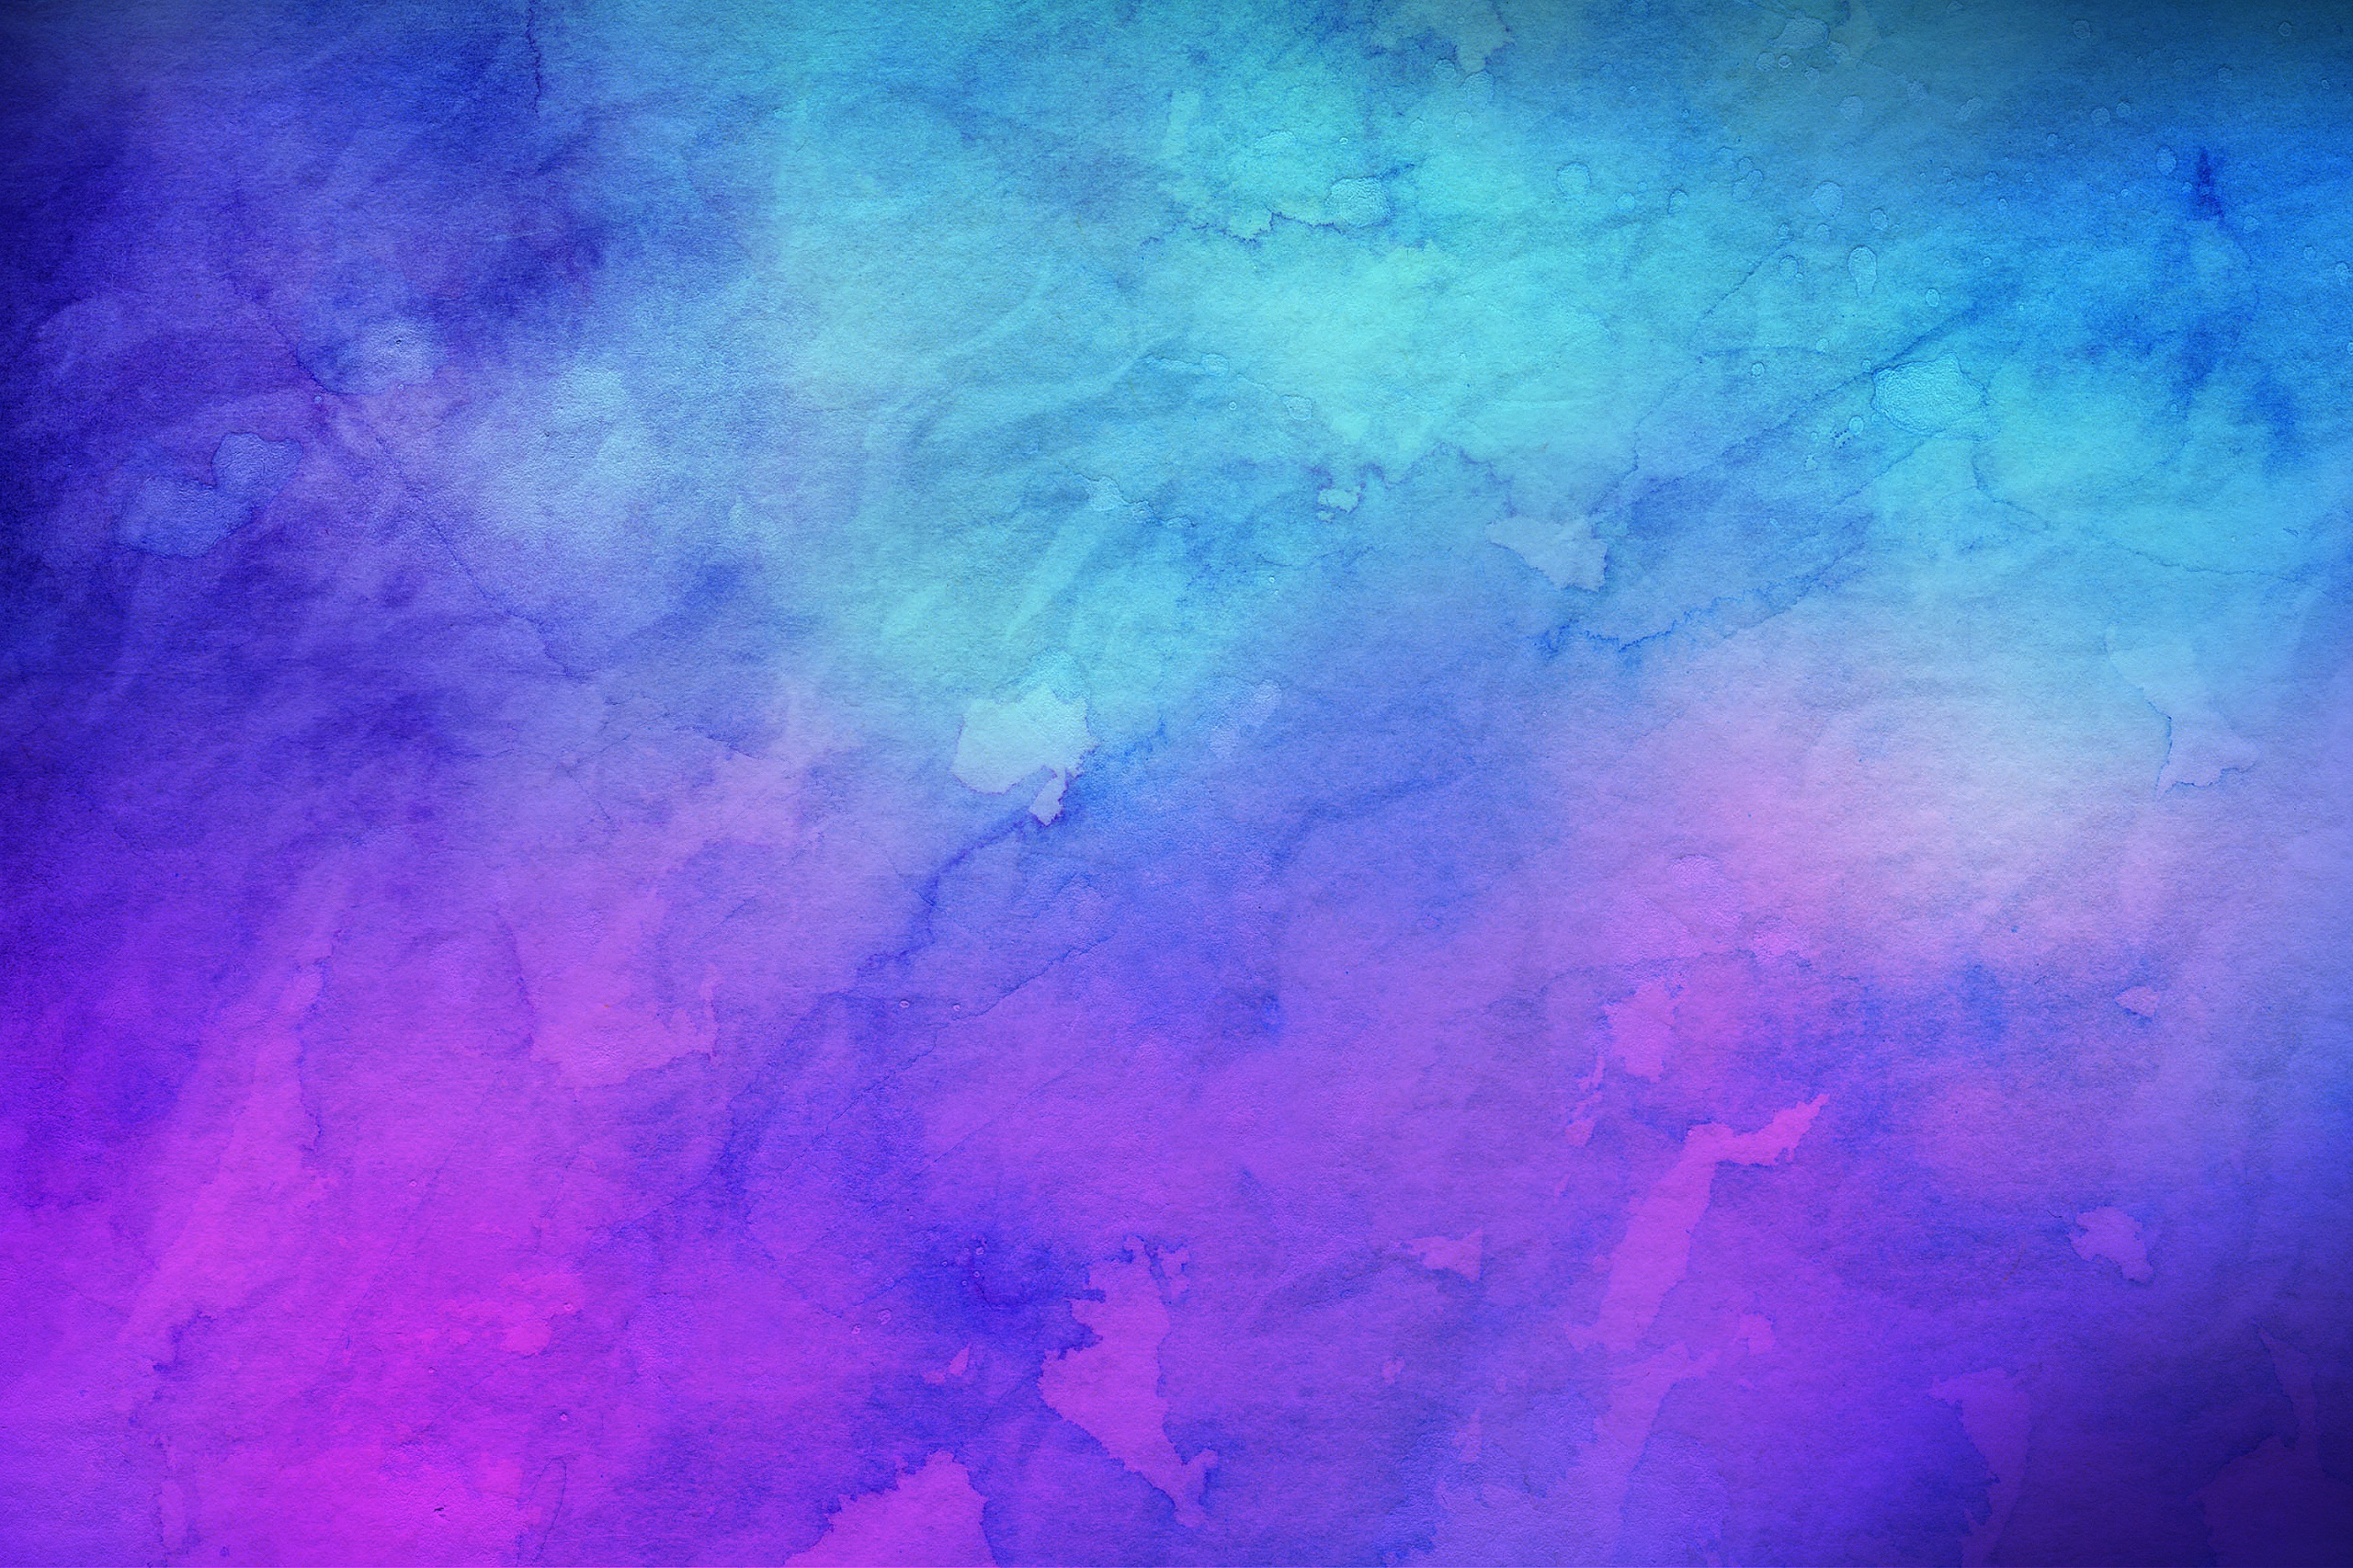 2560x1706 33 Watercolor Hd Wallpapers Background Images